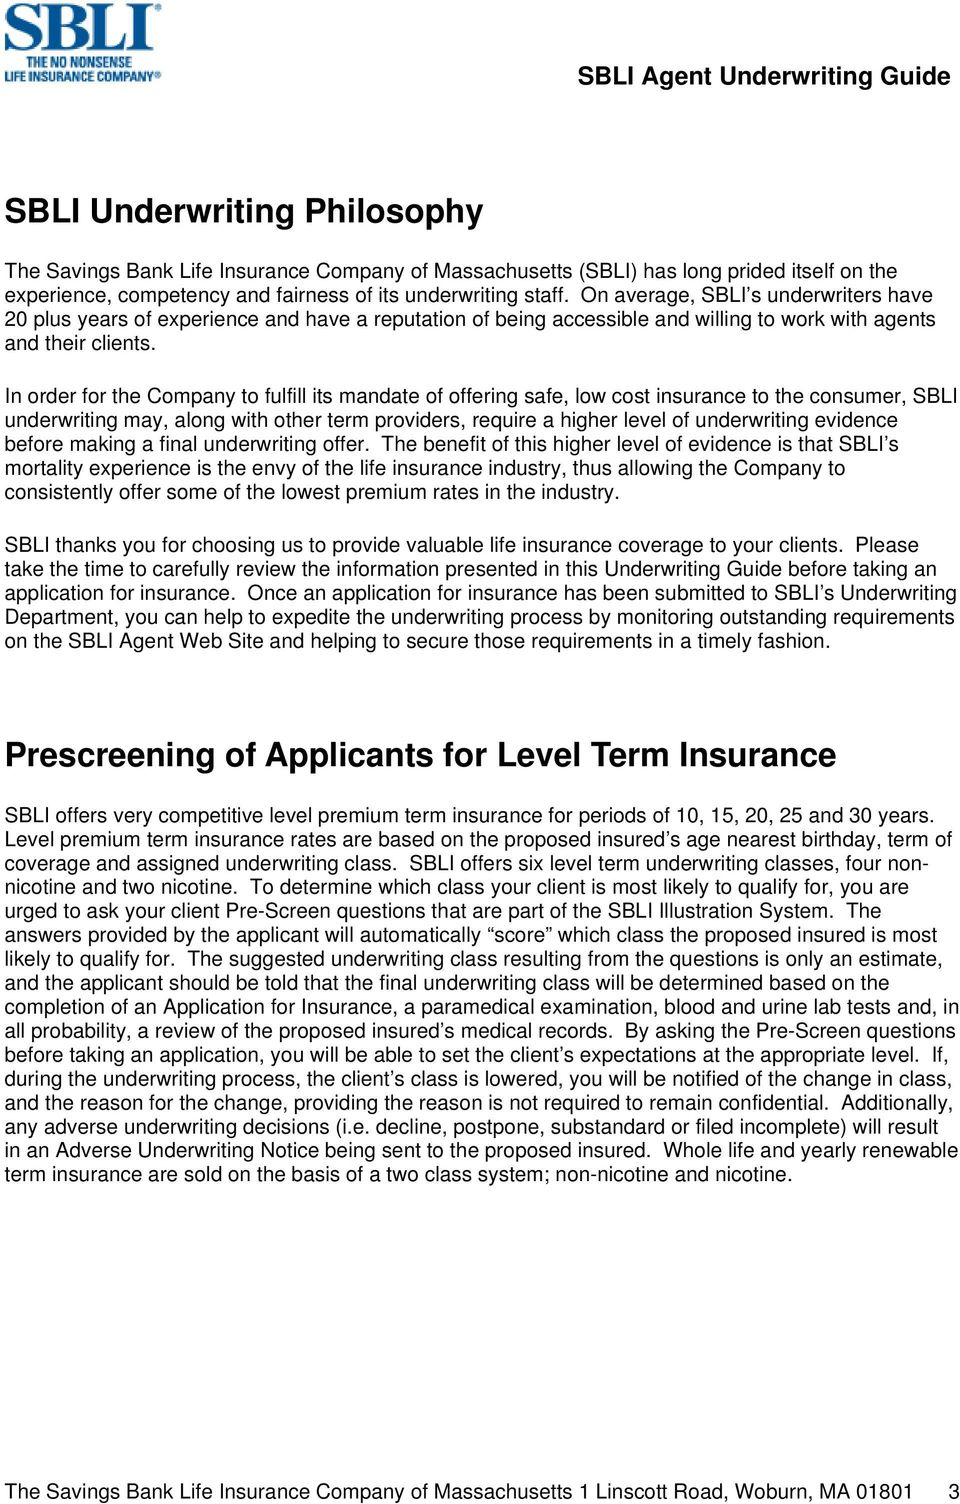 In order for the Company to fulfill its mandate of offering safe, low cost insurance to the consumer, SBLI underwriting may, along with other term providers, require a higher level of underwriting